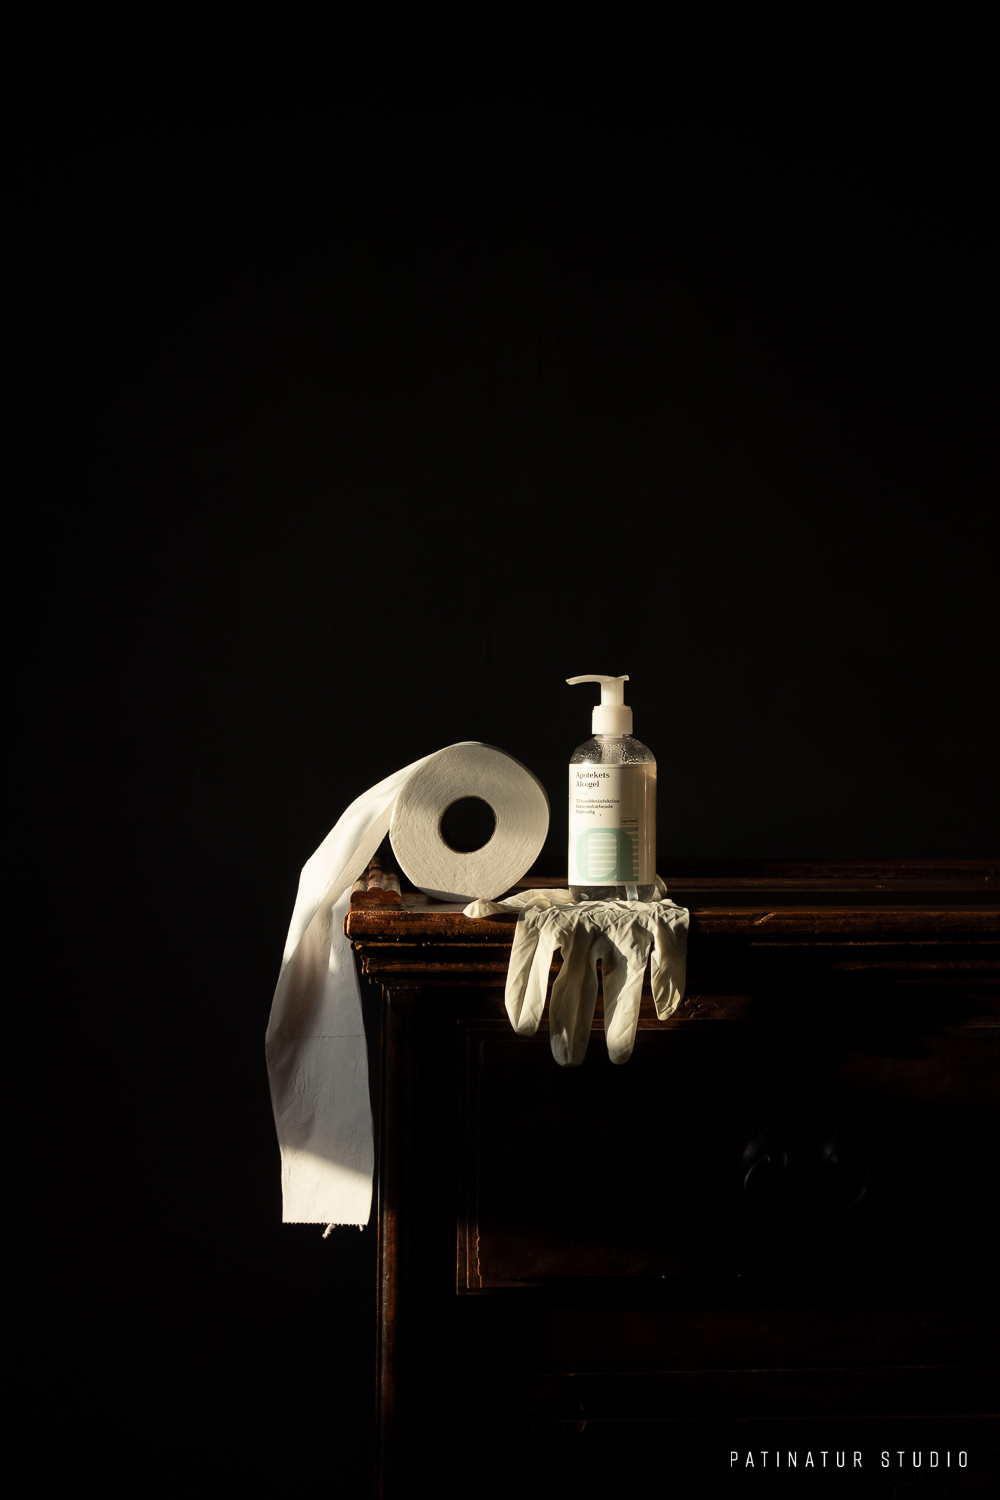 Photo Art | 'Corona pandemic' 'Old Master' inspired still life with toilet paper, hand sanitizer and protective glove.